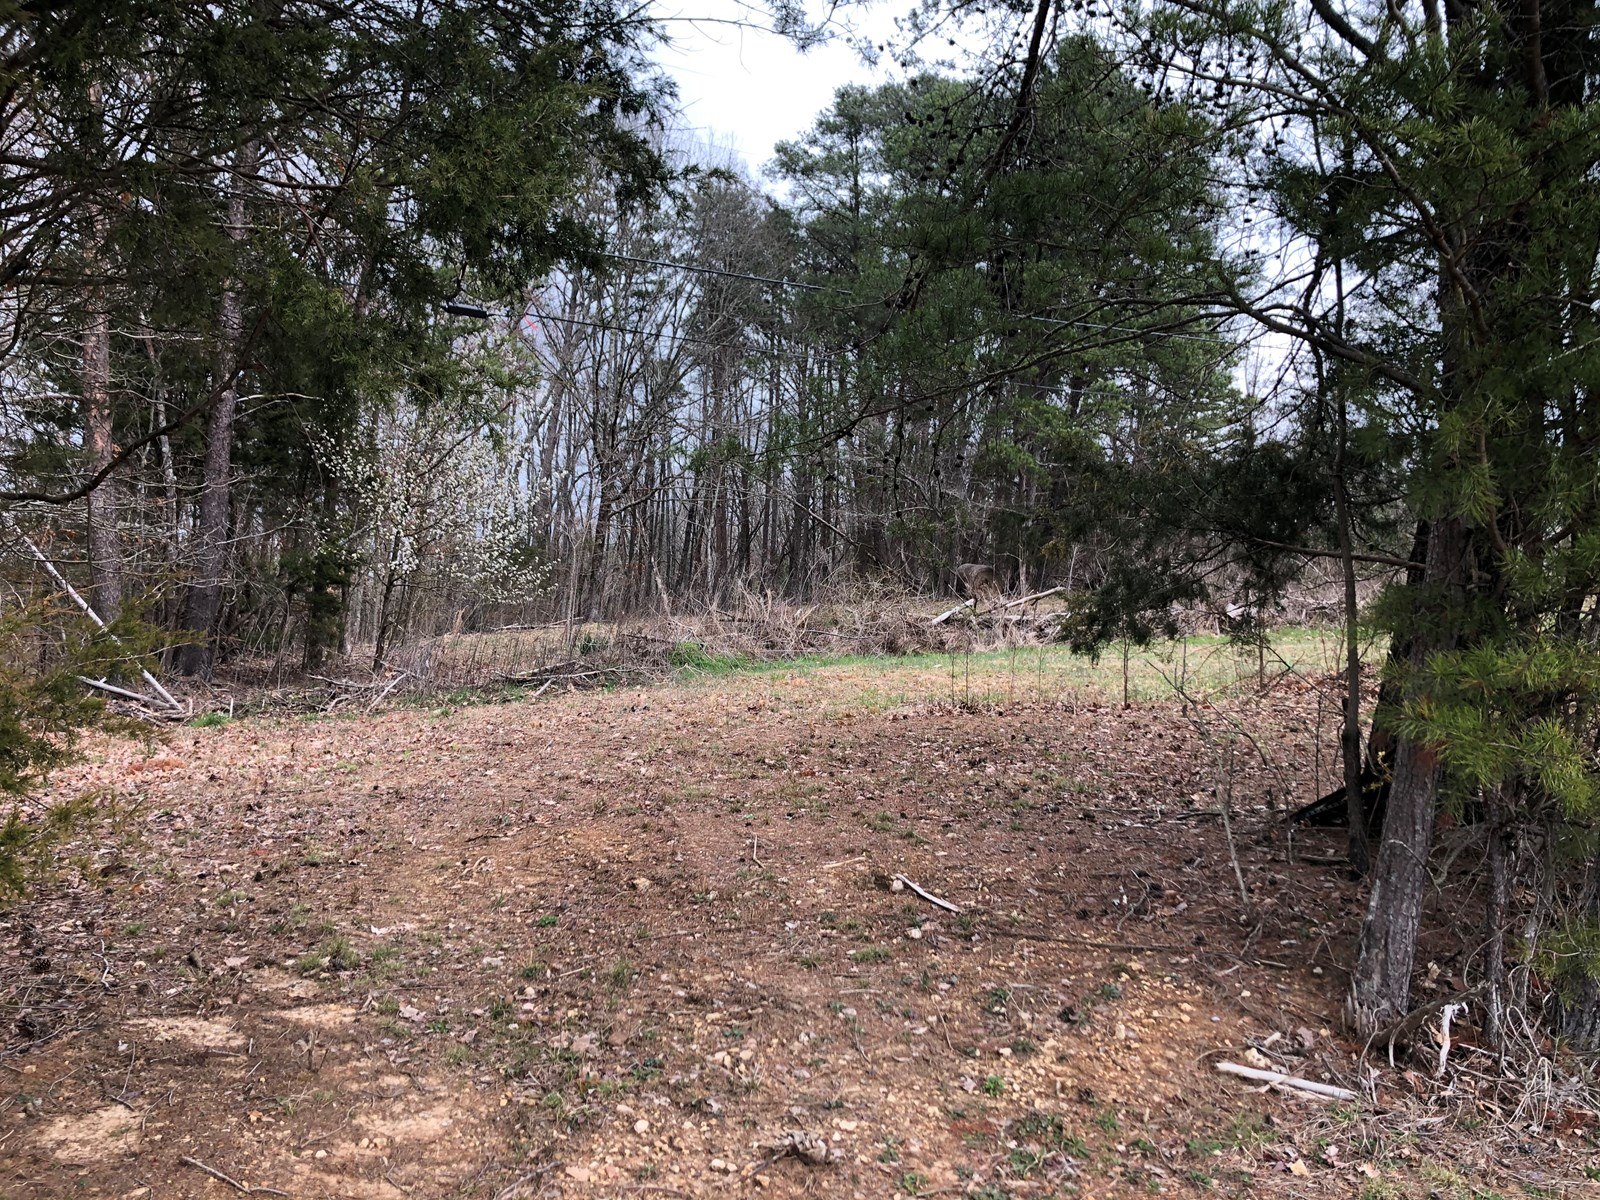 1 Acre Lot For Sale in Talbott, TN